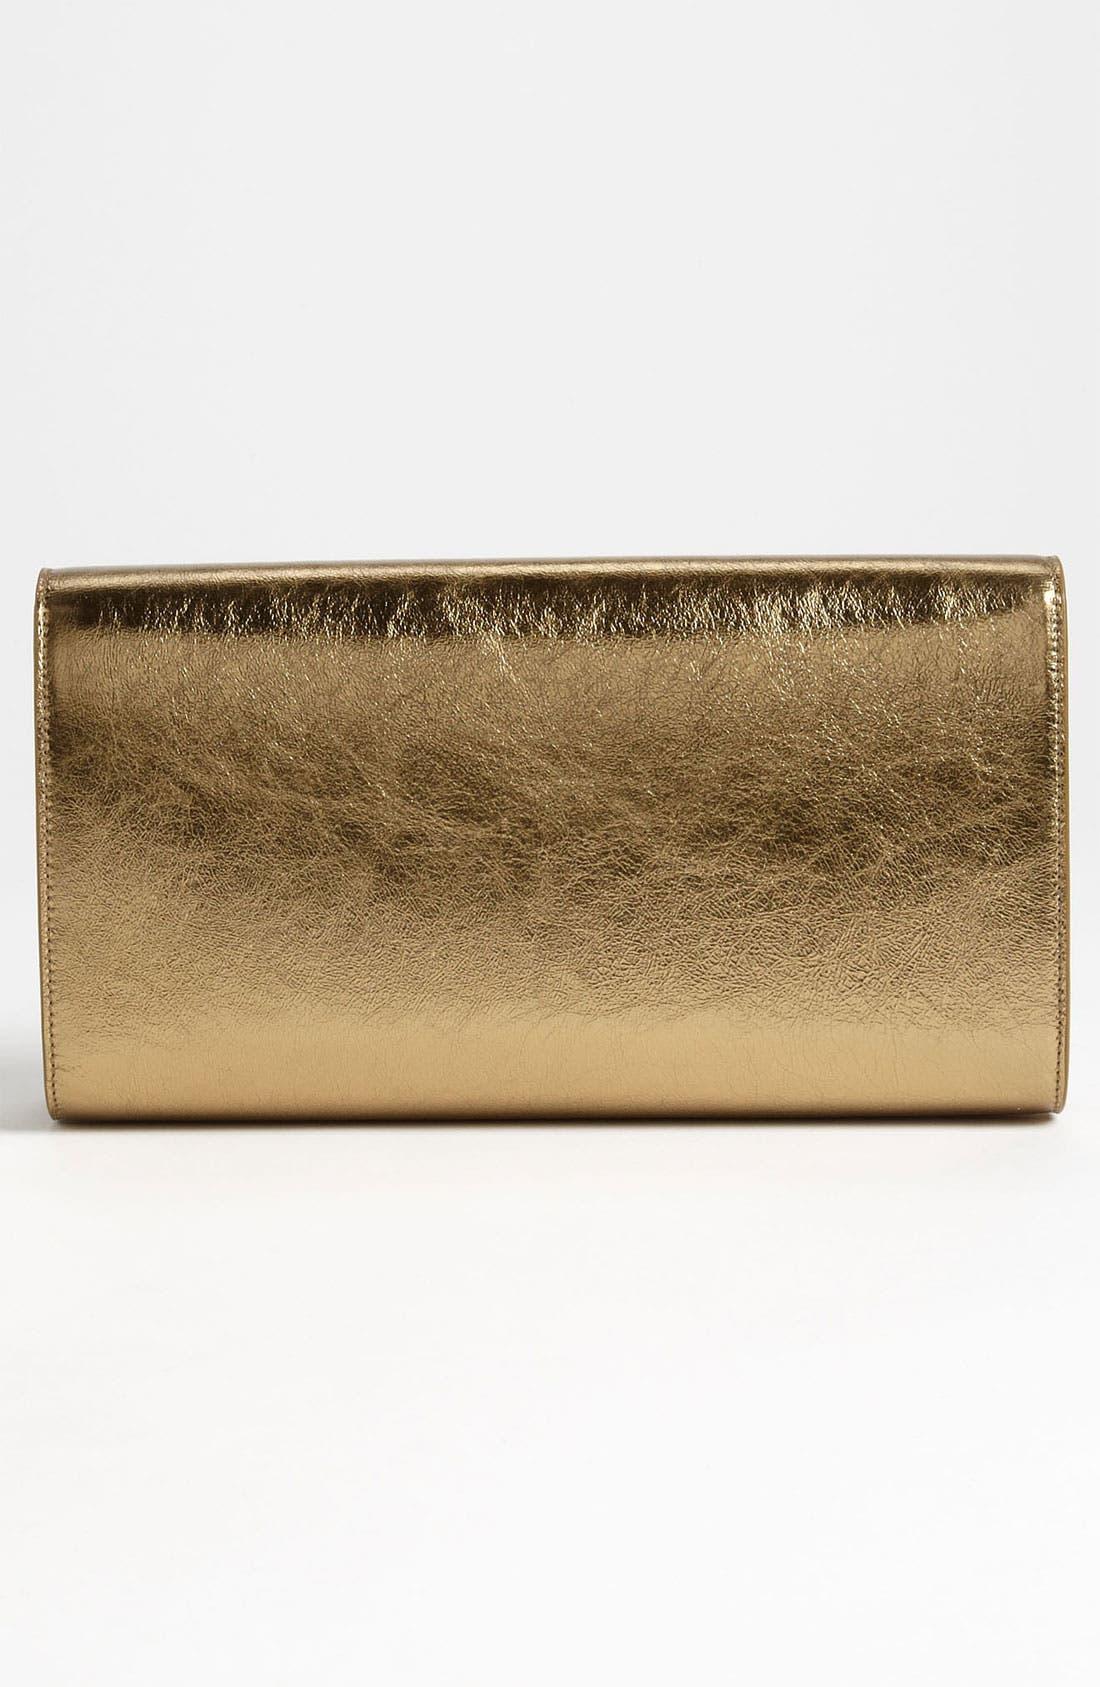 Alternate Image 3  - Saint Laurent 'Belle de Jour' Metallic Leather Clutch